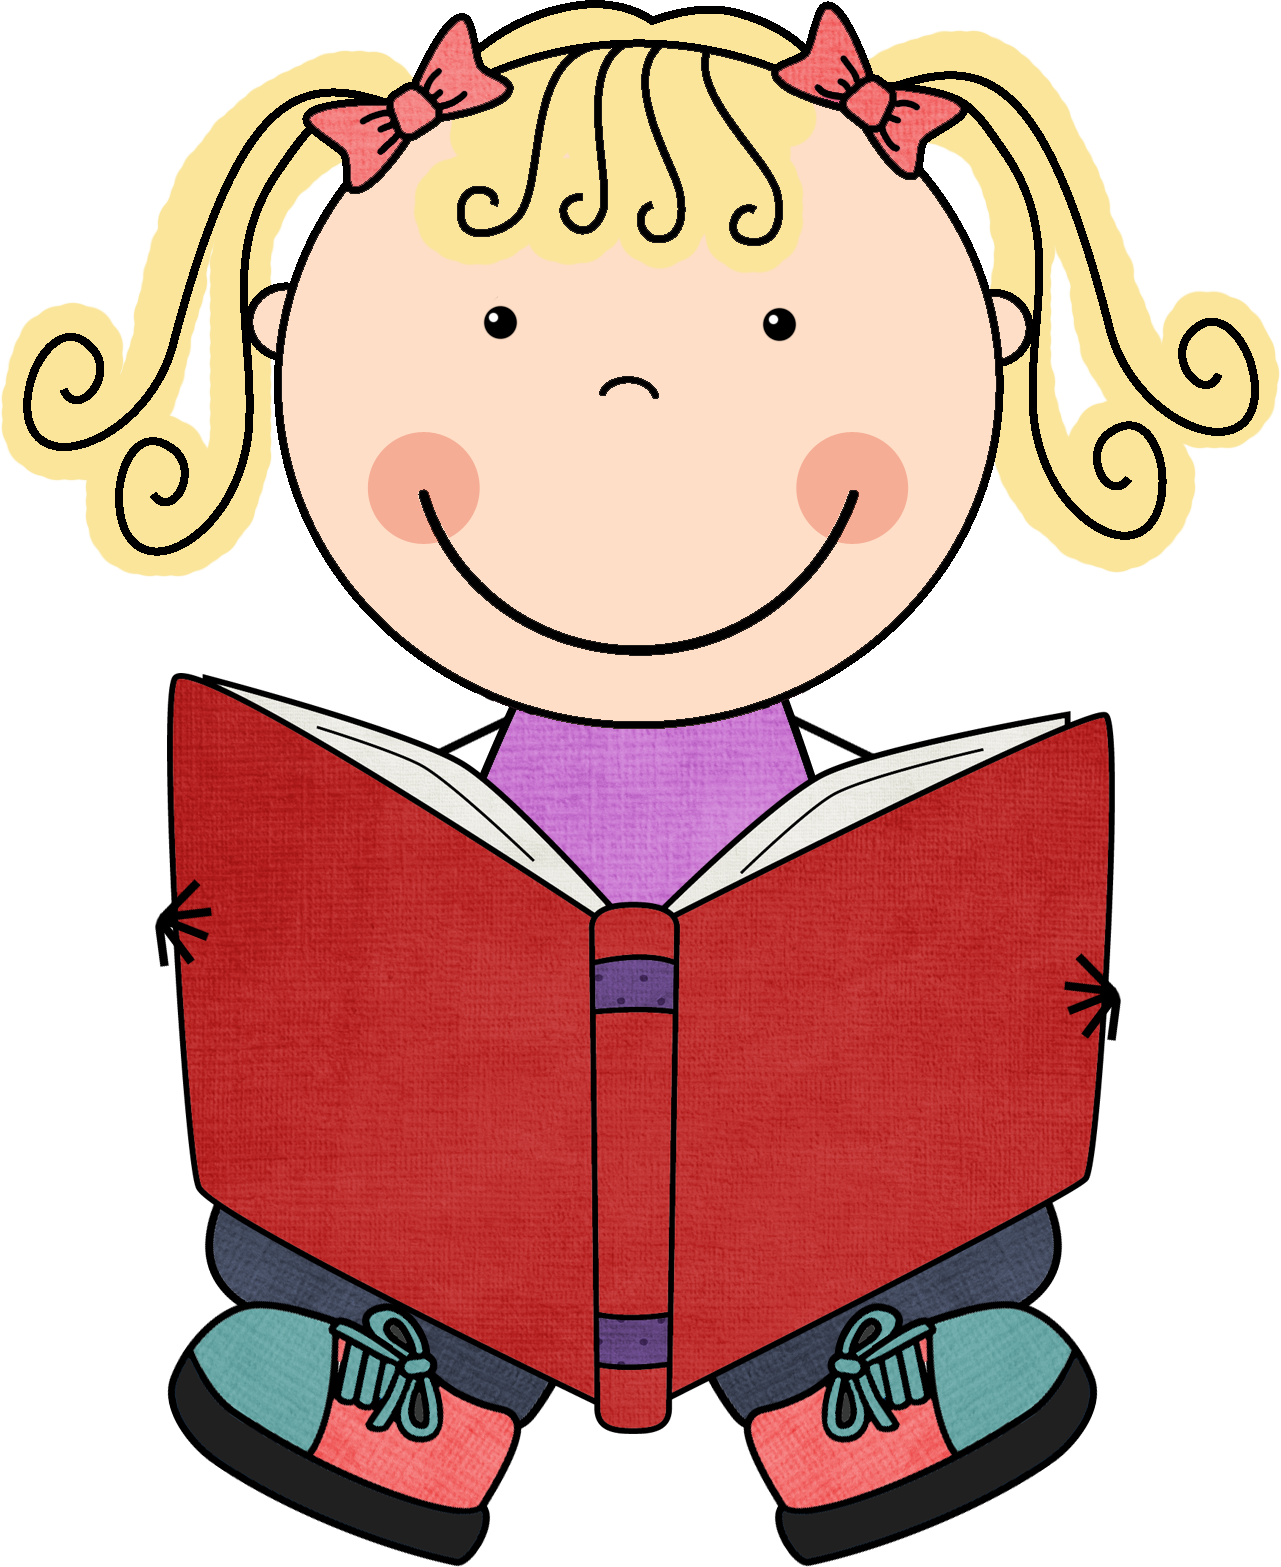 Children book clipart graphic download Kids with books clipart - ClipartFest graphic download